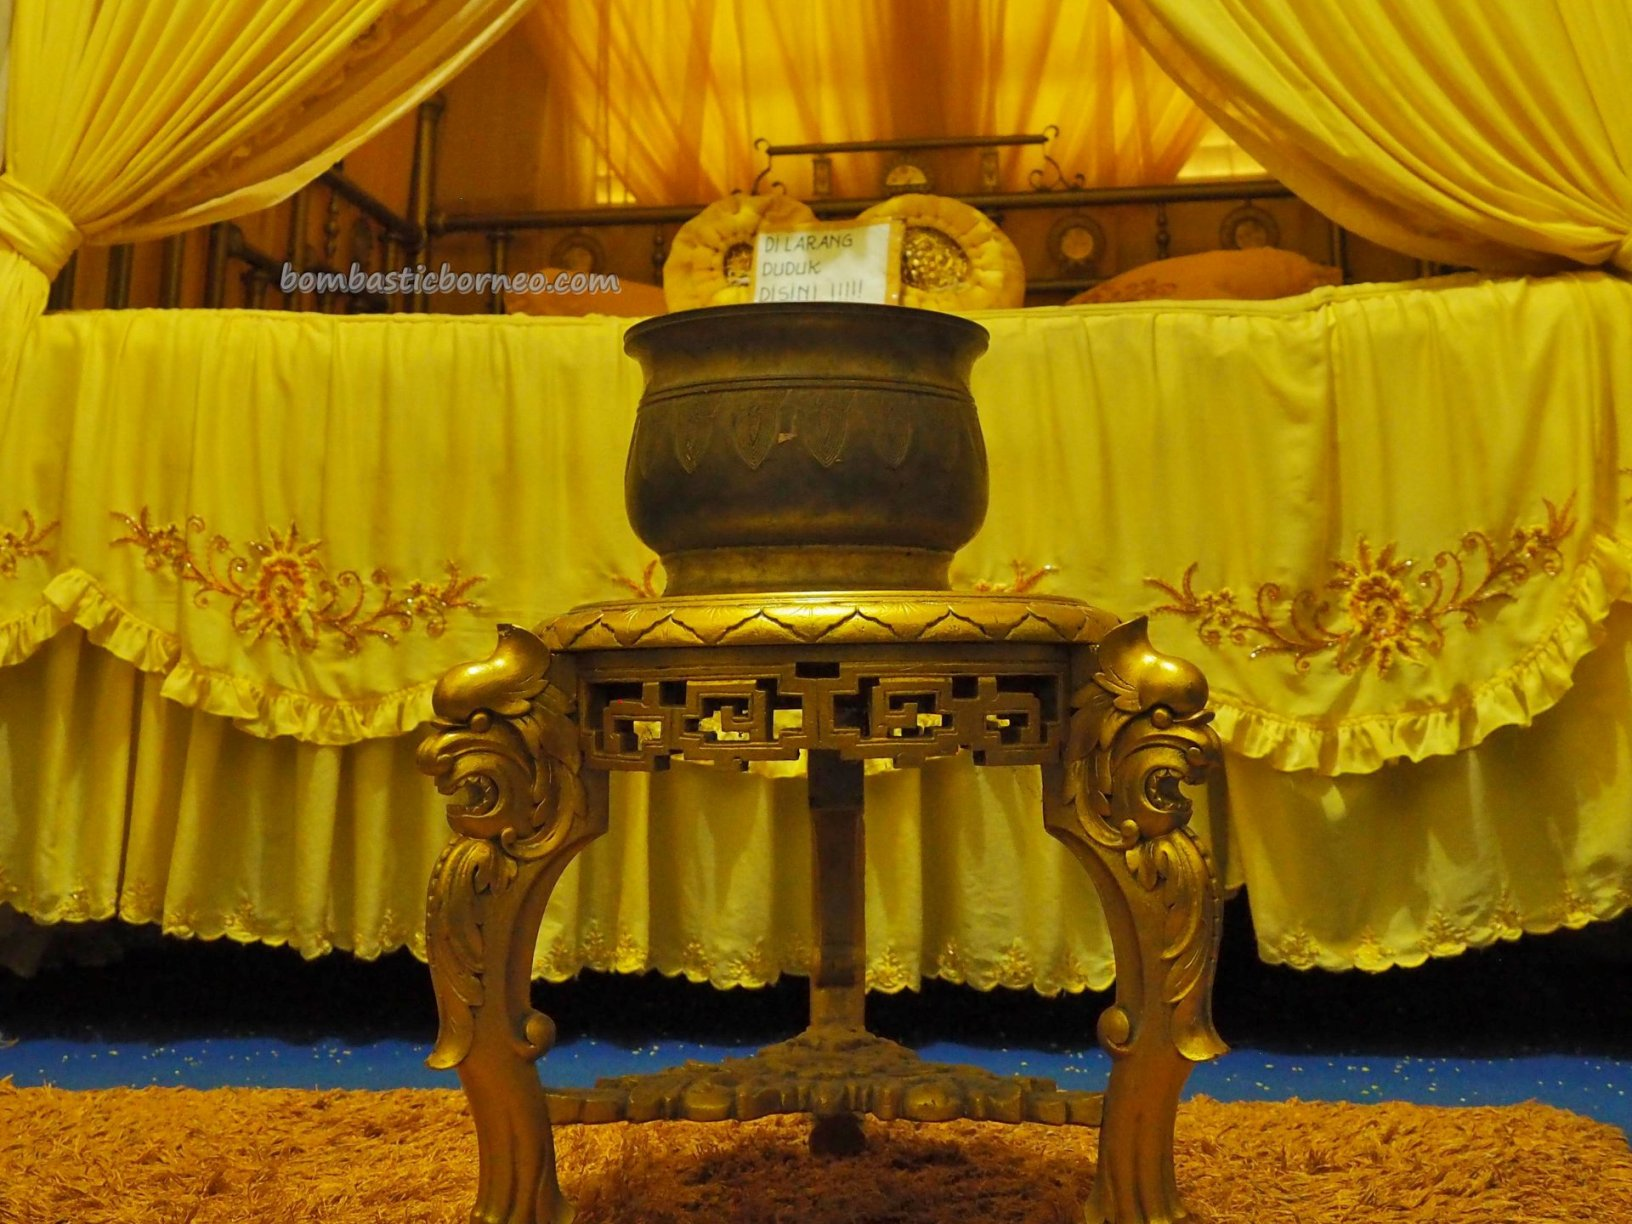 Palace, Istana Kerajaan, Malay Sultanate, history, ancient, antique, traditional, Dayak Melayik, Ethnic, West Kalimantan, museum, tourist attraction, travel guide, 婆罗洲旅游景点, 三发皇宮,